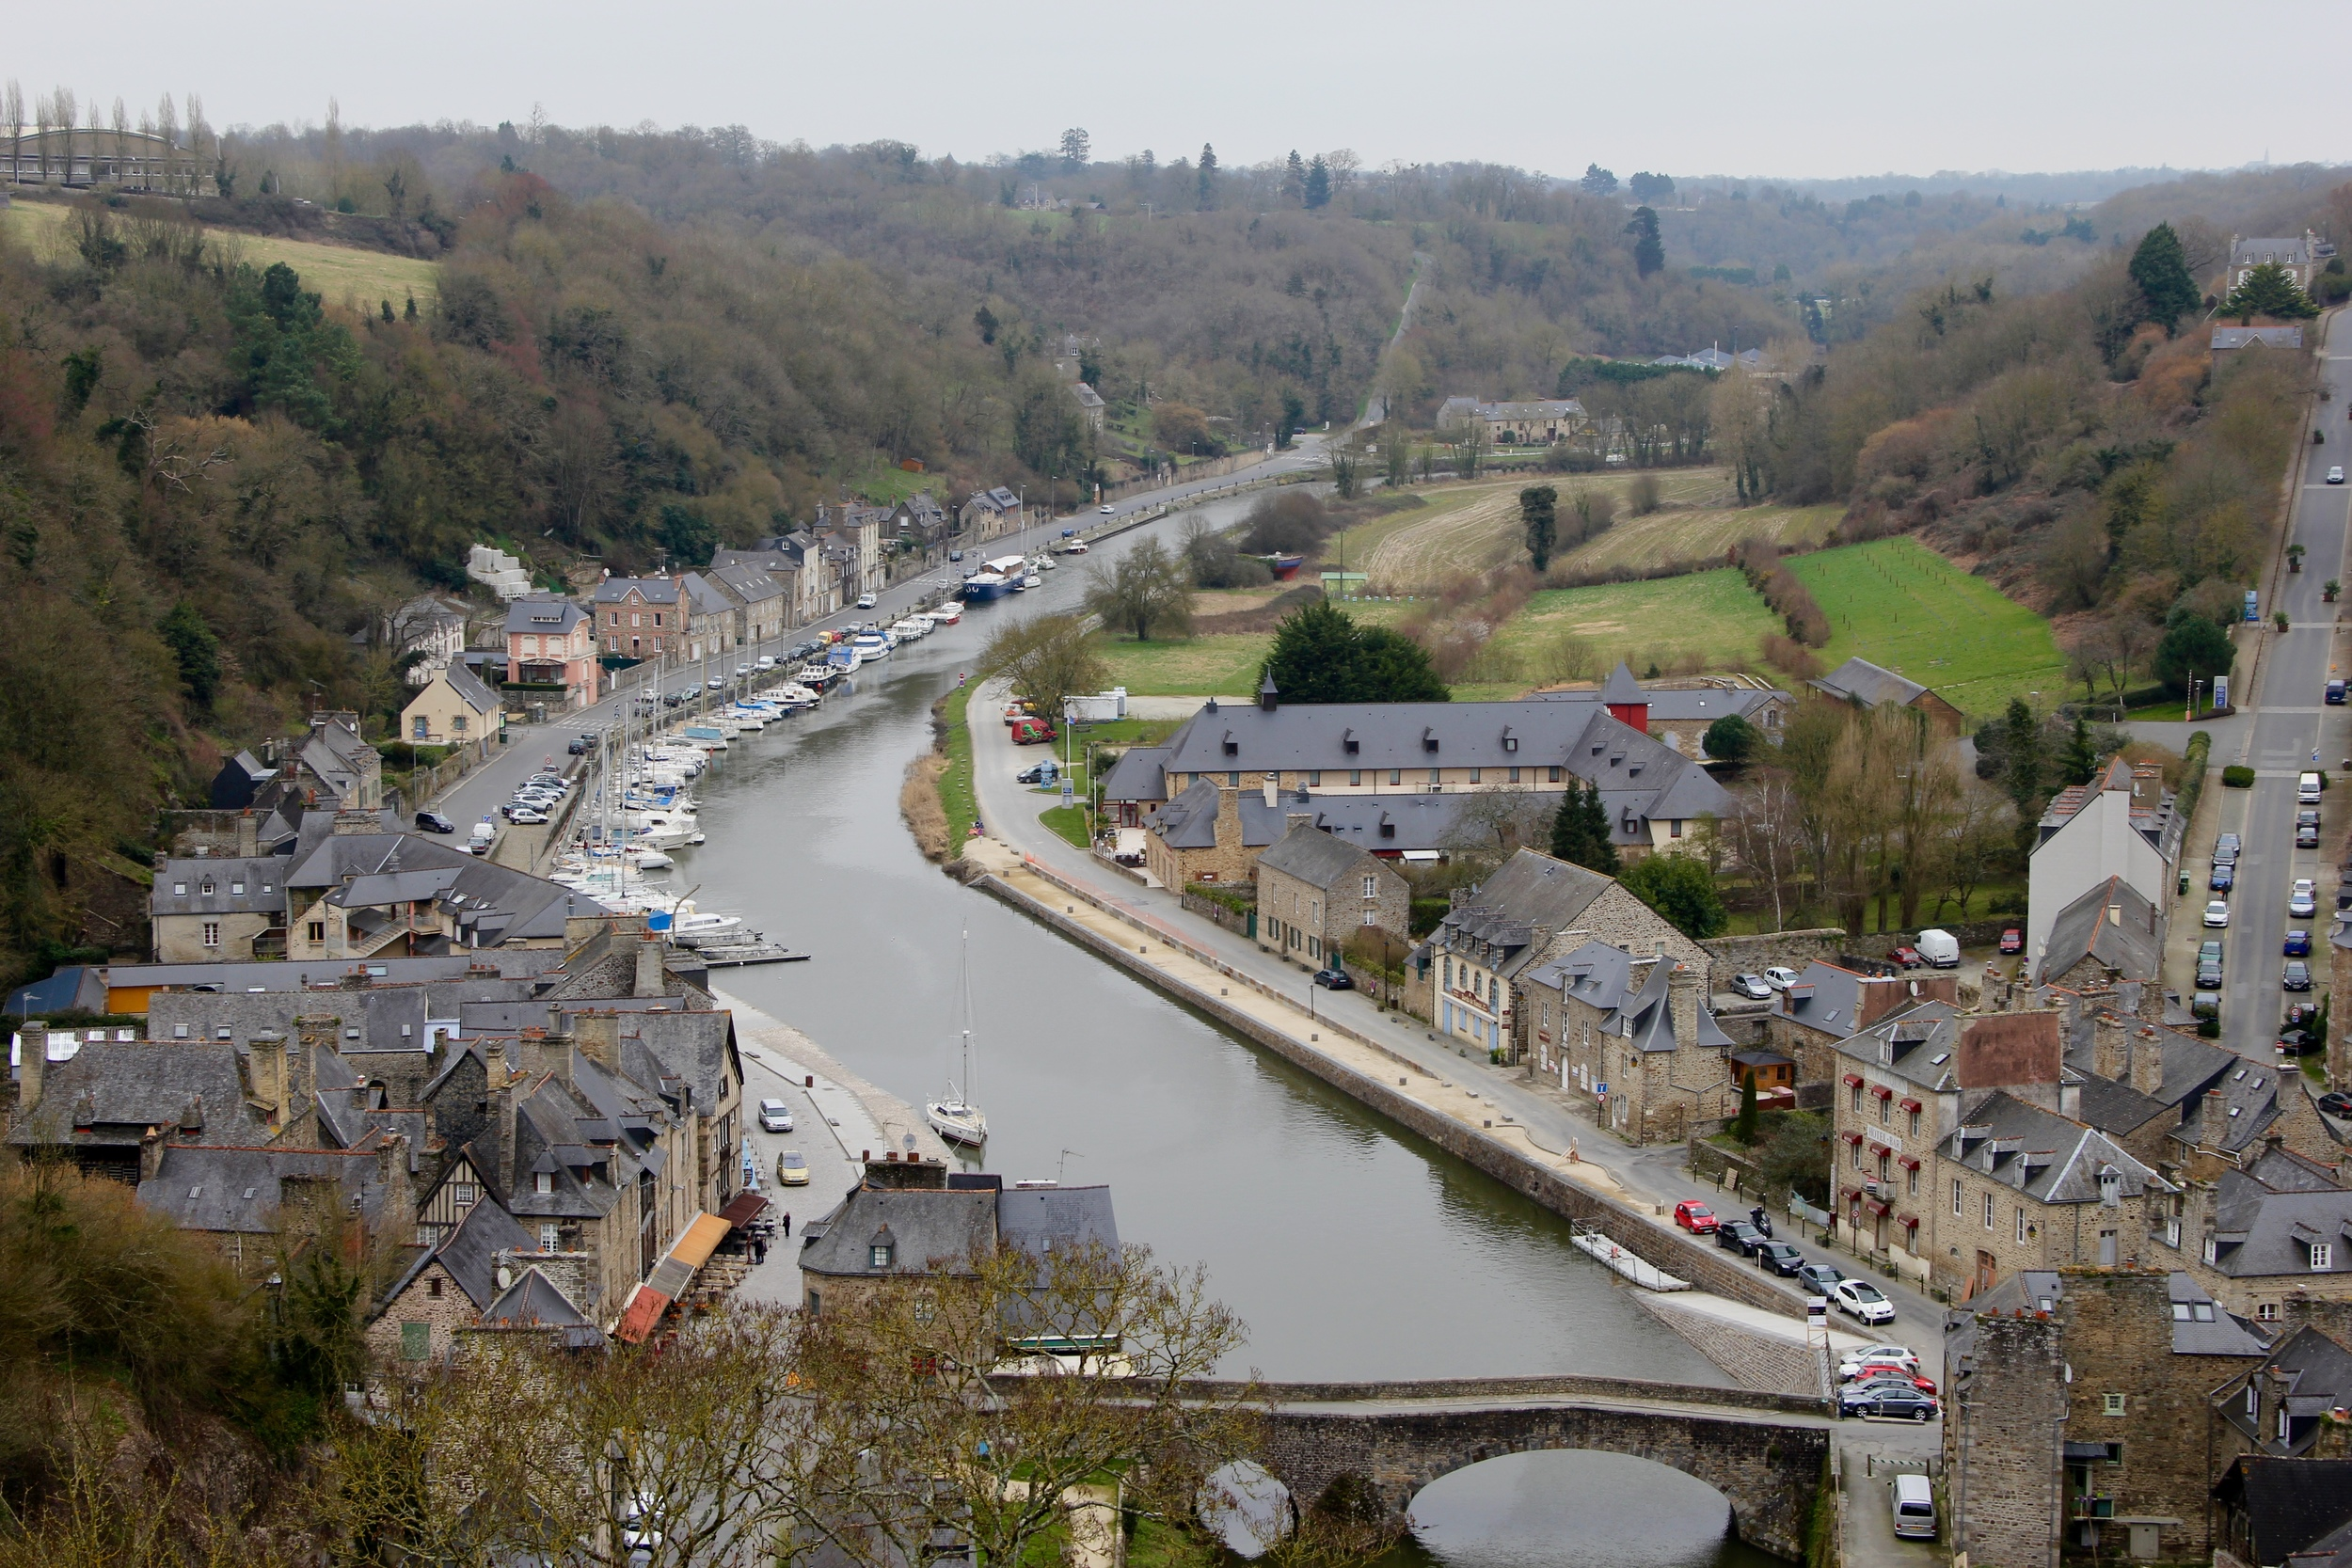 View of the River Rance from the gardens behind Dinan's basilica